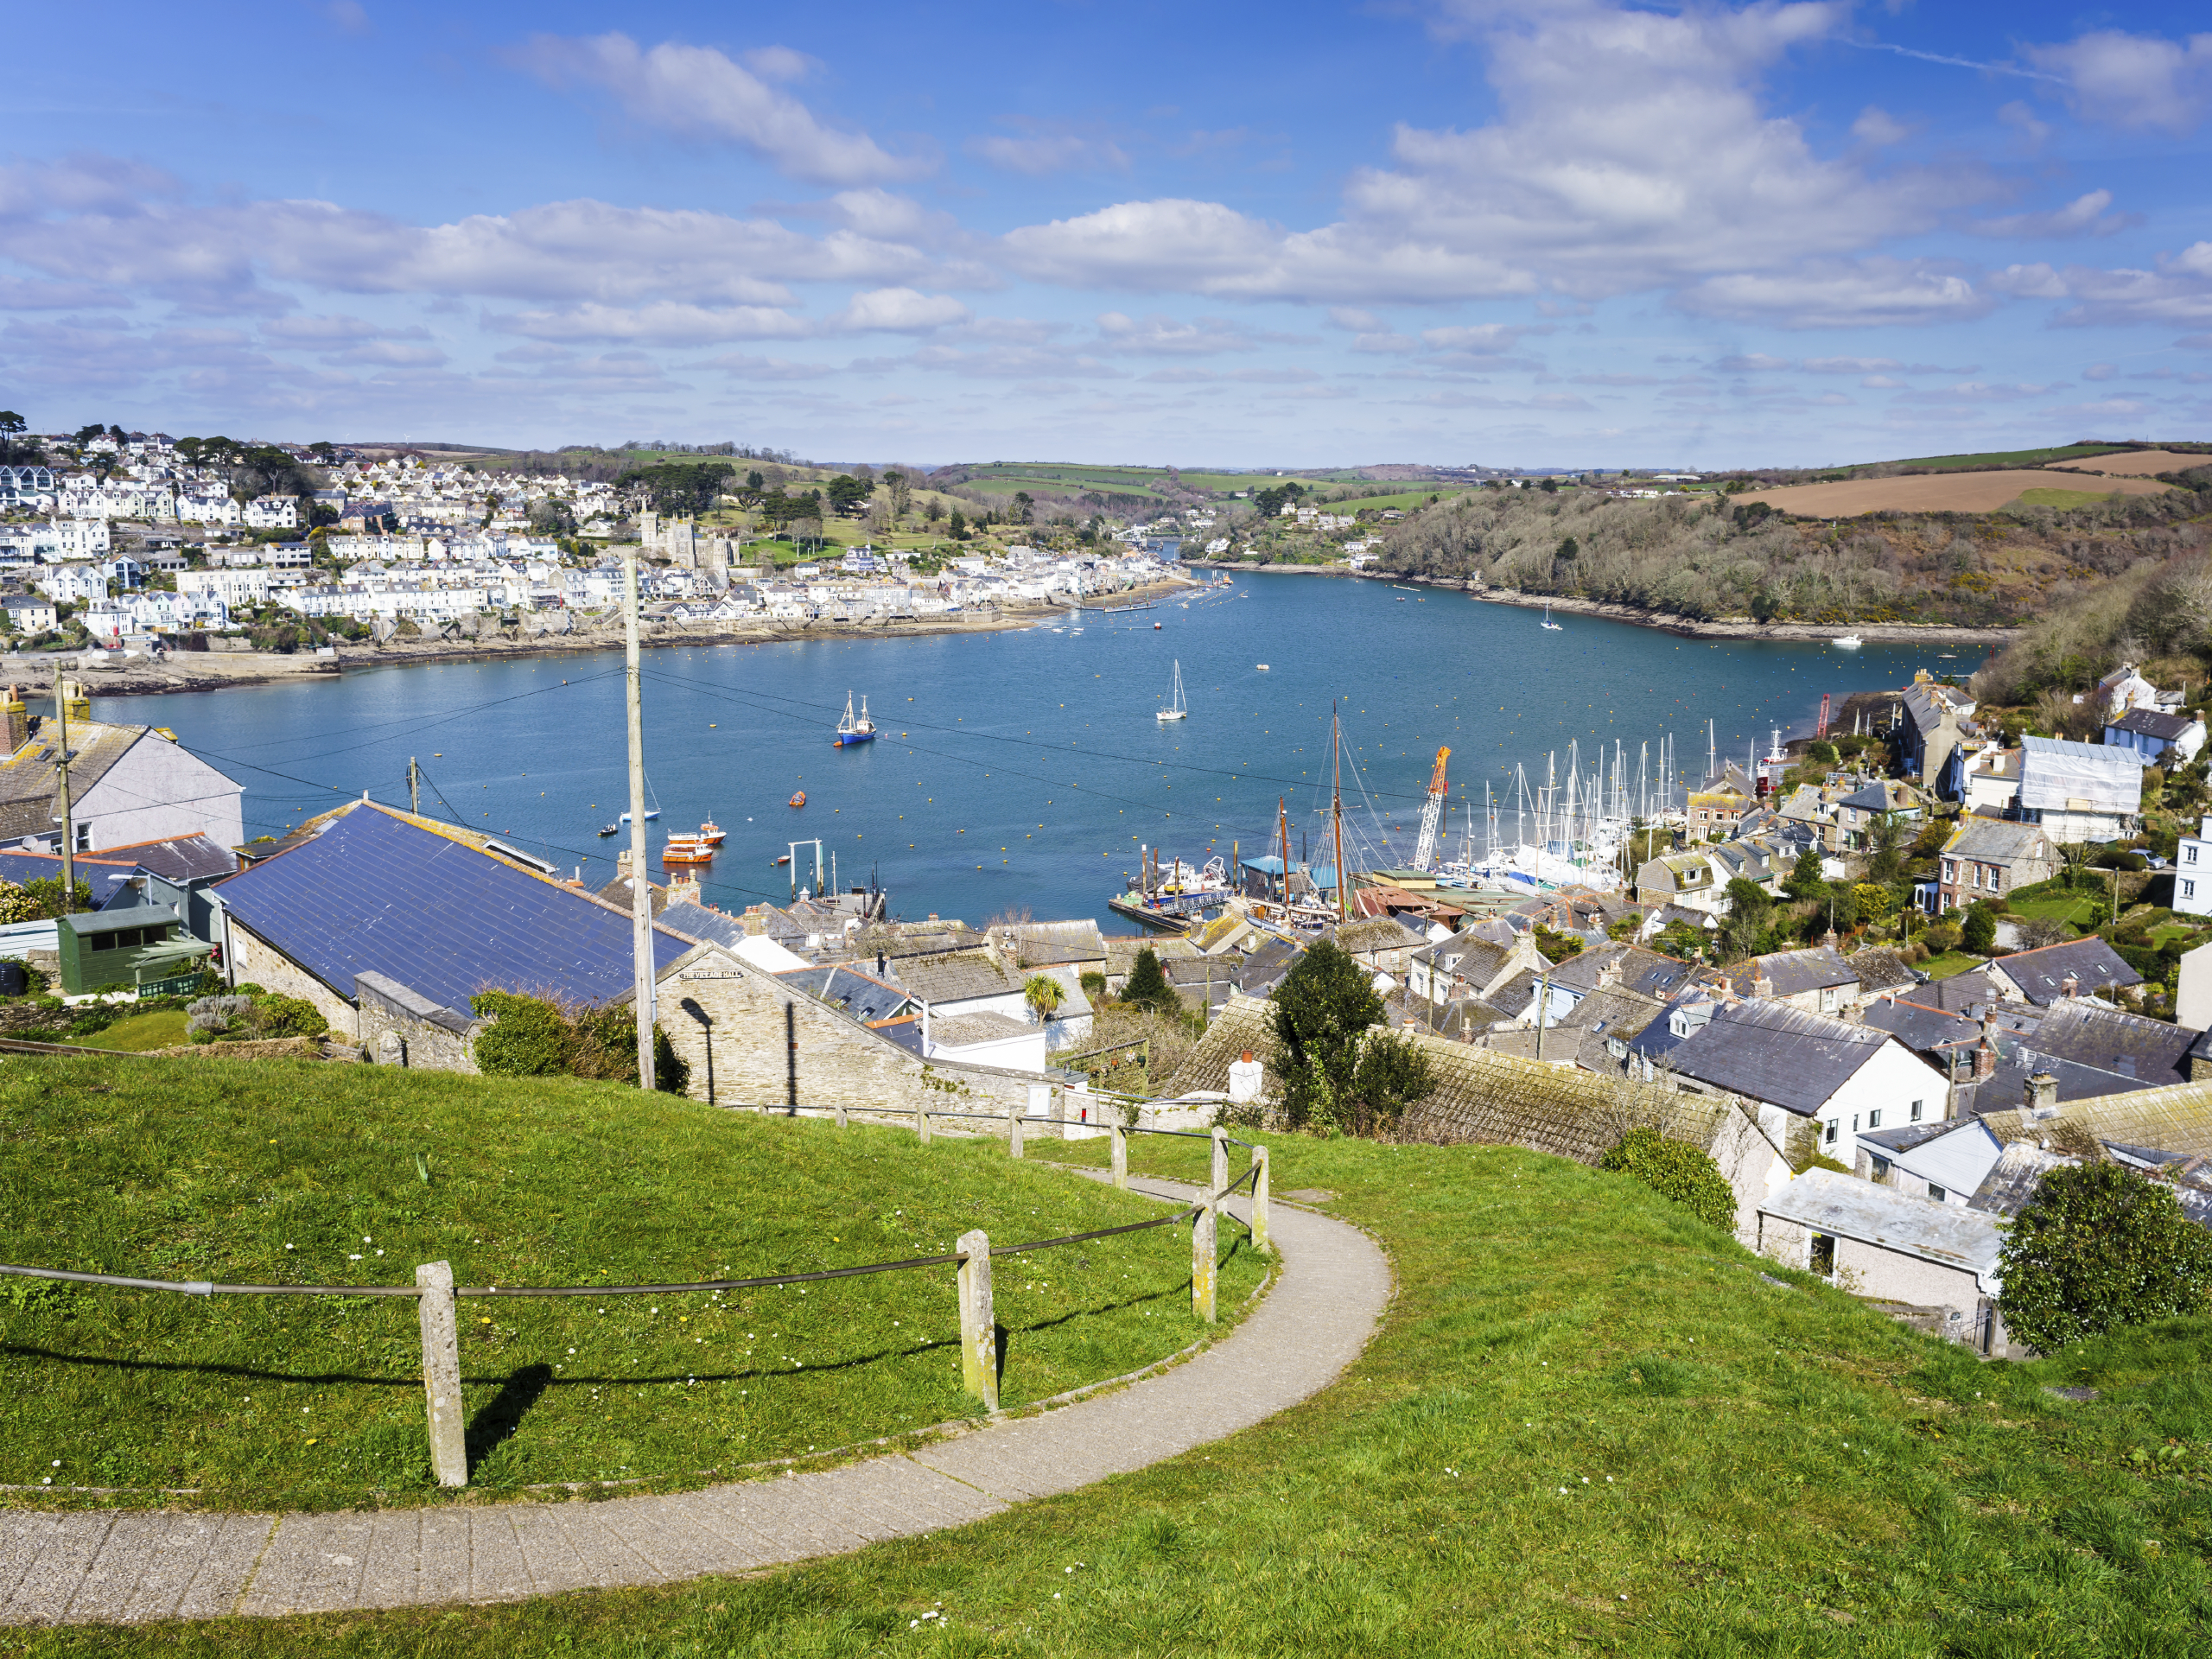 Kick back, relax and recharge your batteries in peaceful, perfect Cornwall